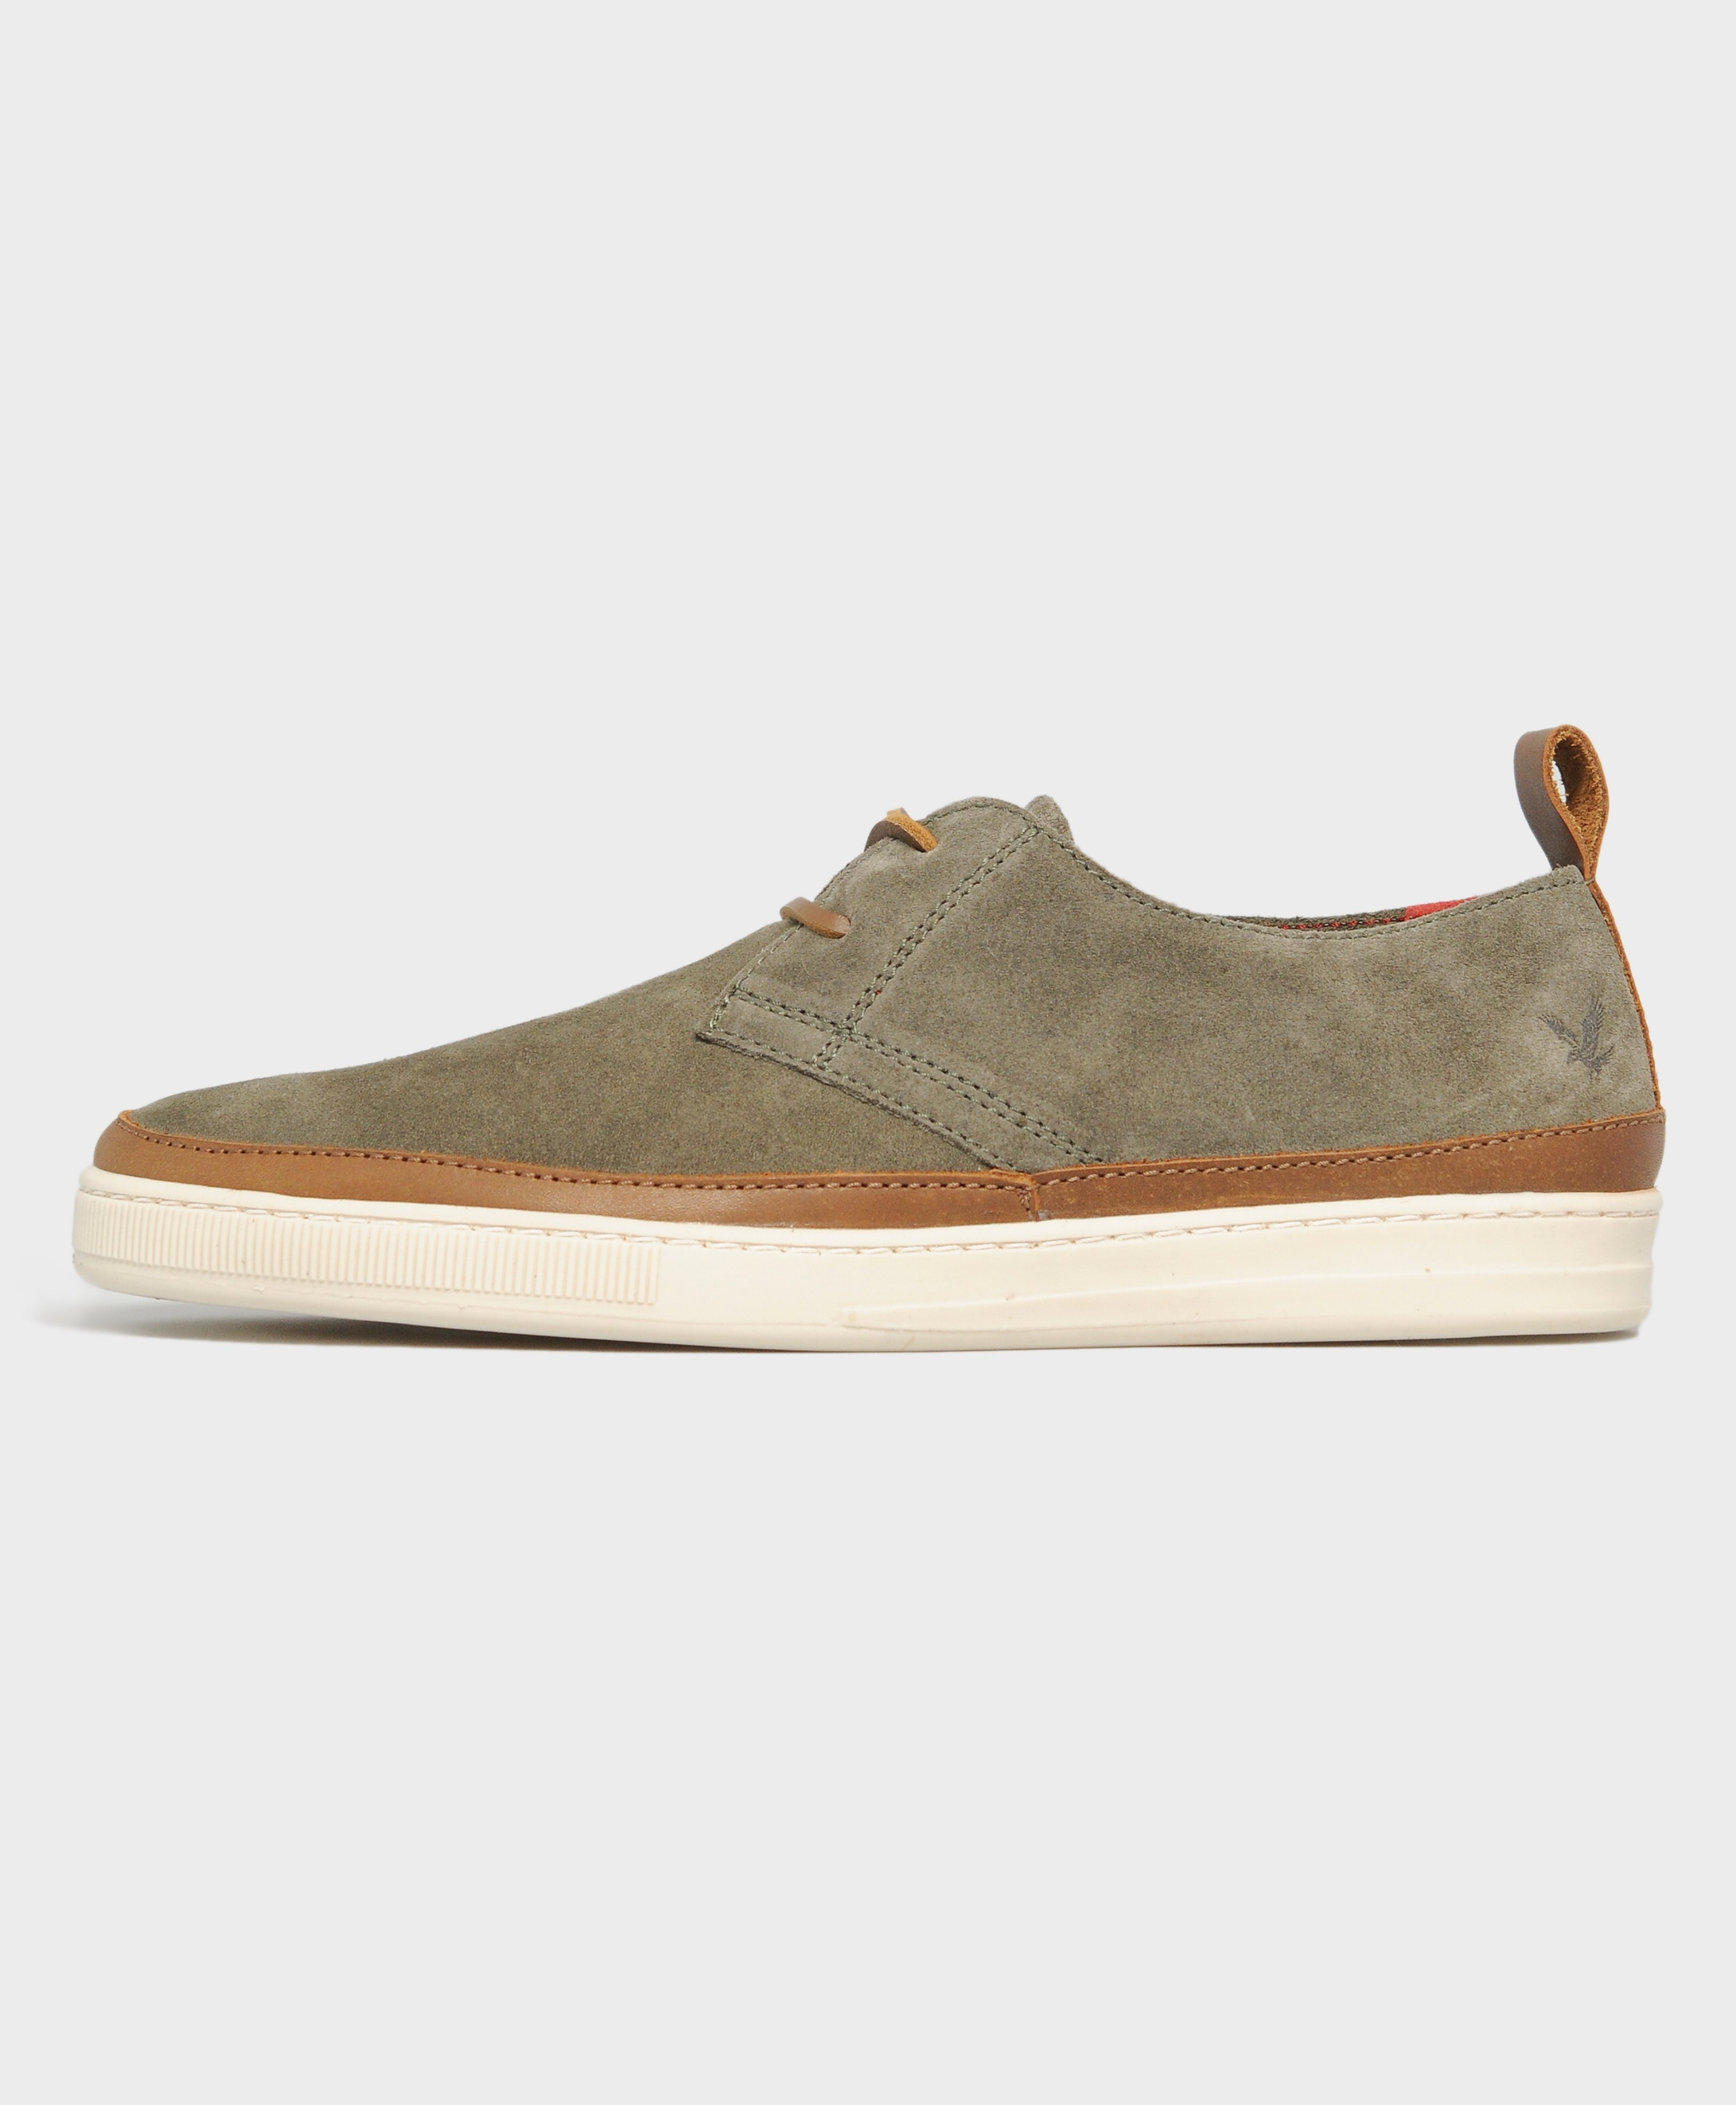 Lyle & Scott Ernan Shoe